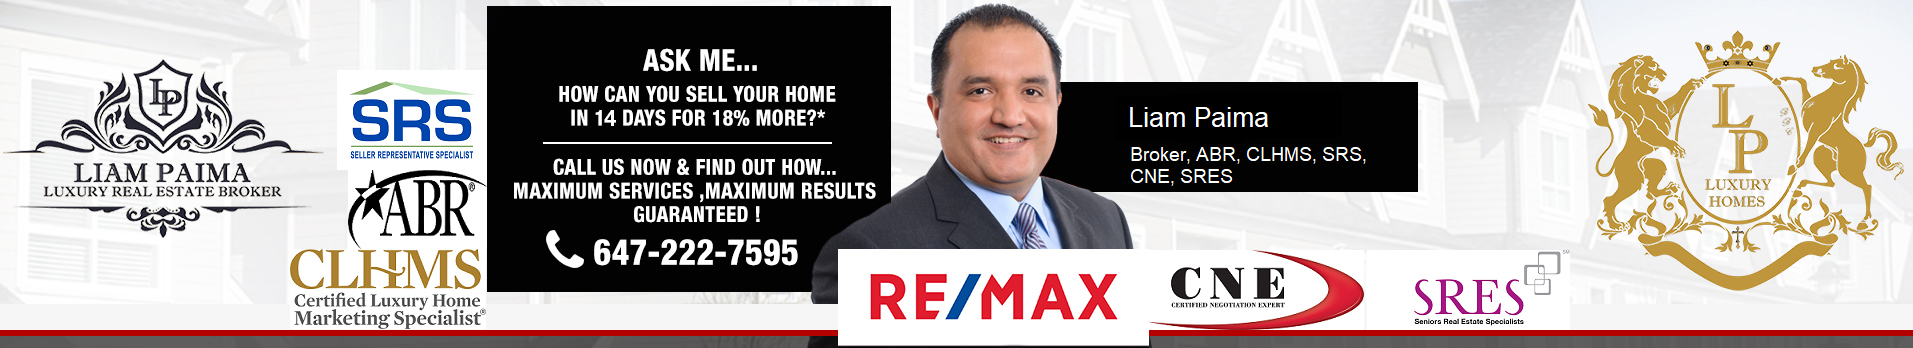 #1 Low Commission Real Estate Agent With Best Low Real Estate Commission Service In Toronto, Vaughan, Kleinburg, Oakville, Richmond Hill, Mississauga, Brampton, Milton, Caledon, Georgetown, Burlington, Orangeville, Markham - Page - 37